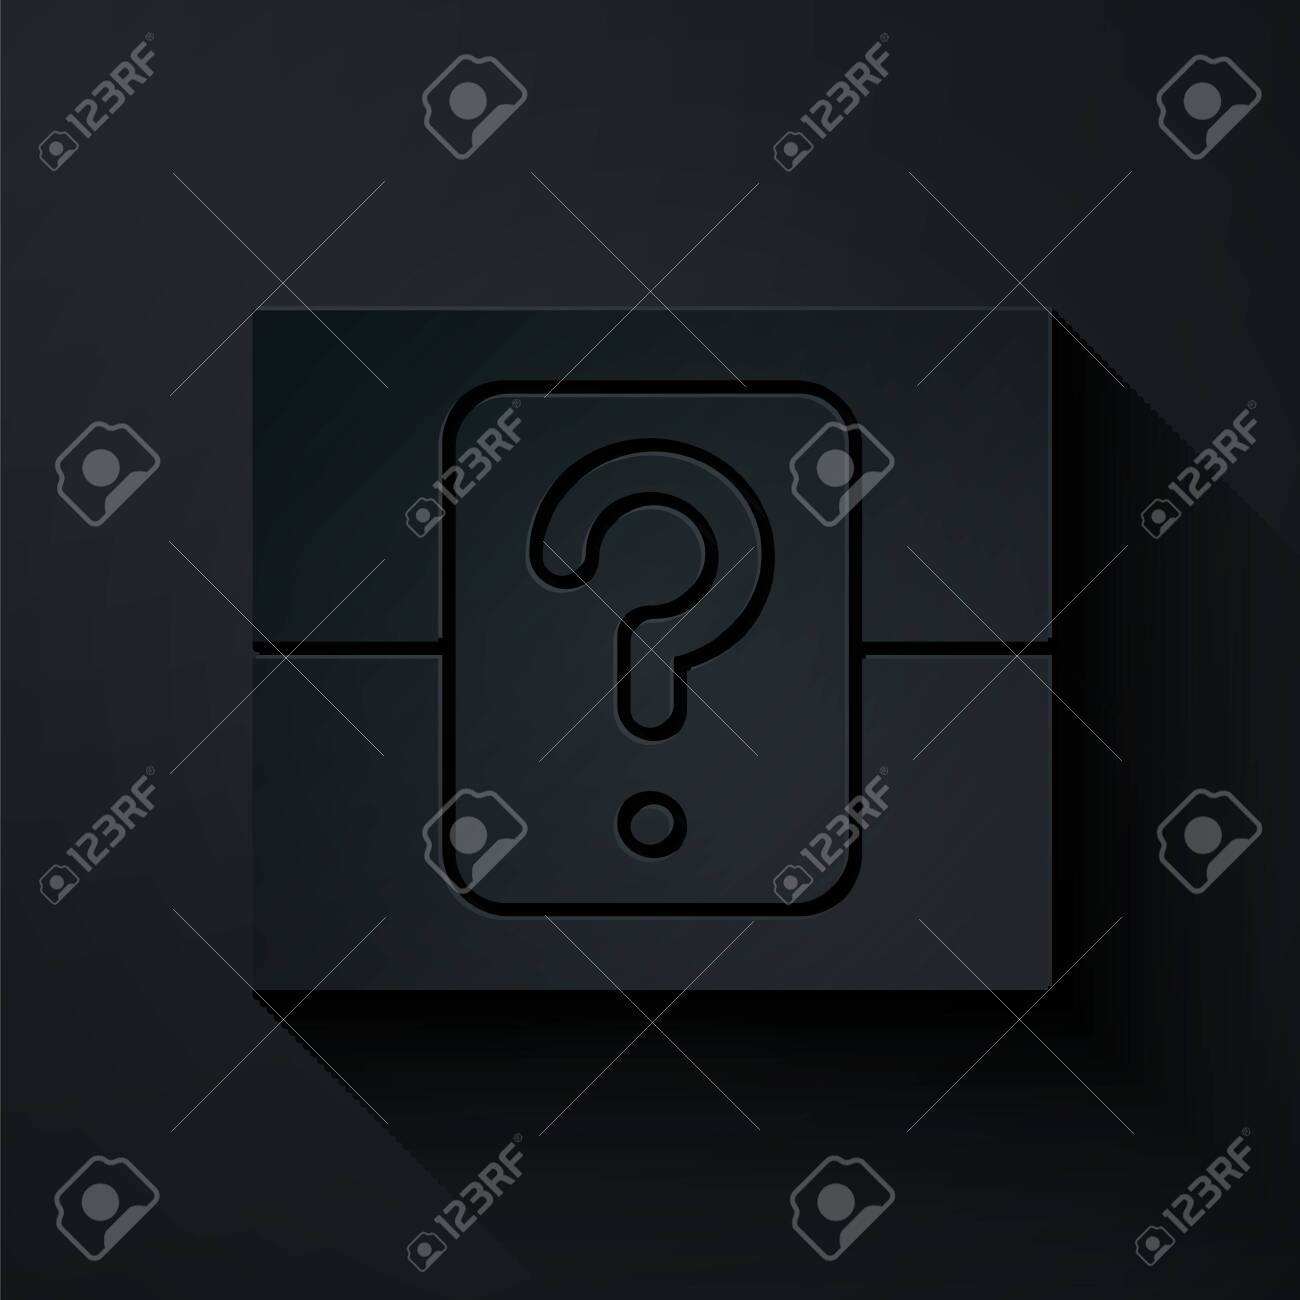 Paper cut Mystery box or random loot box for games icon isolated on black background. Question box. Paper art style. Vector Illustration - 137359733